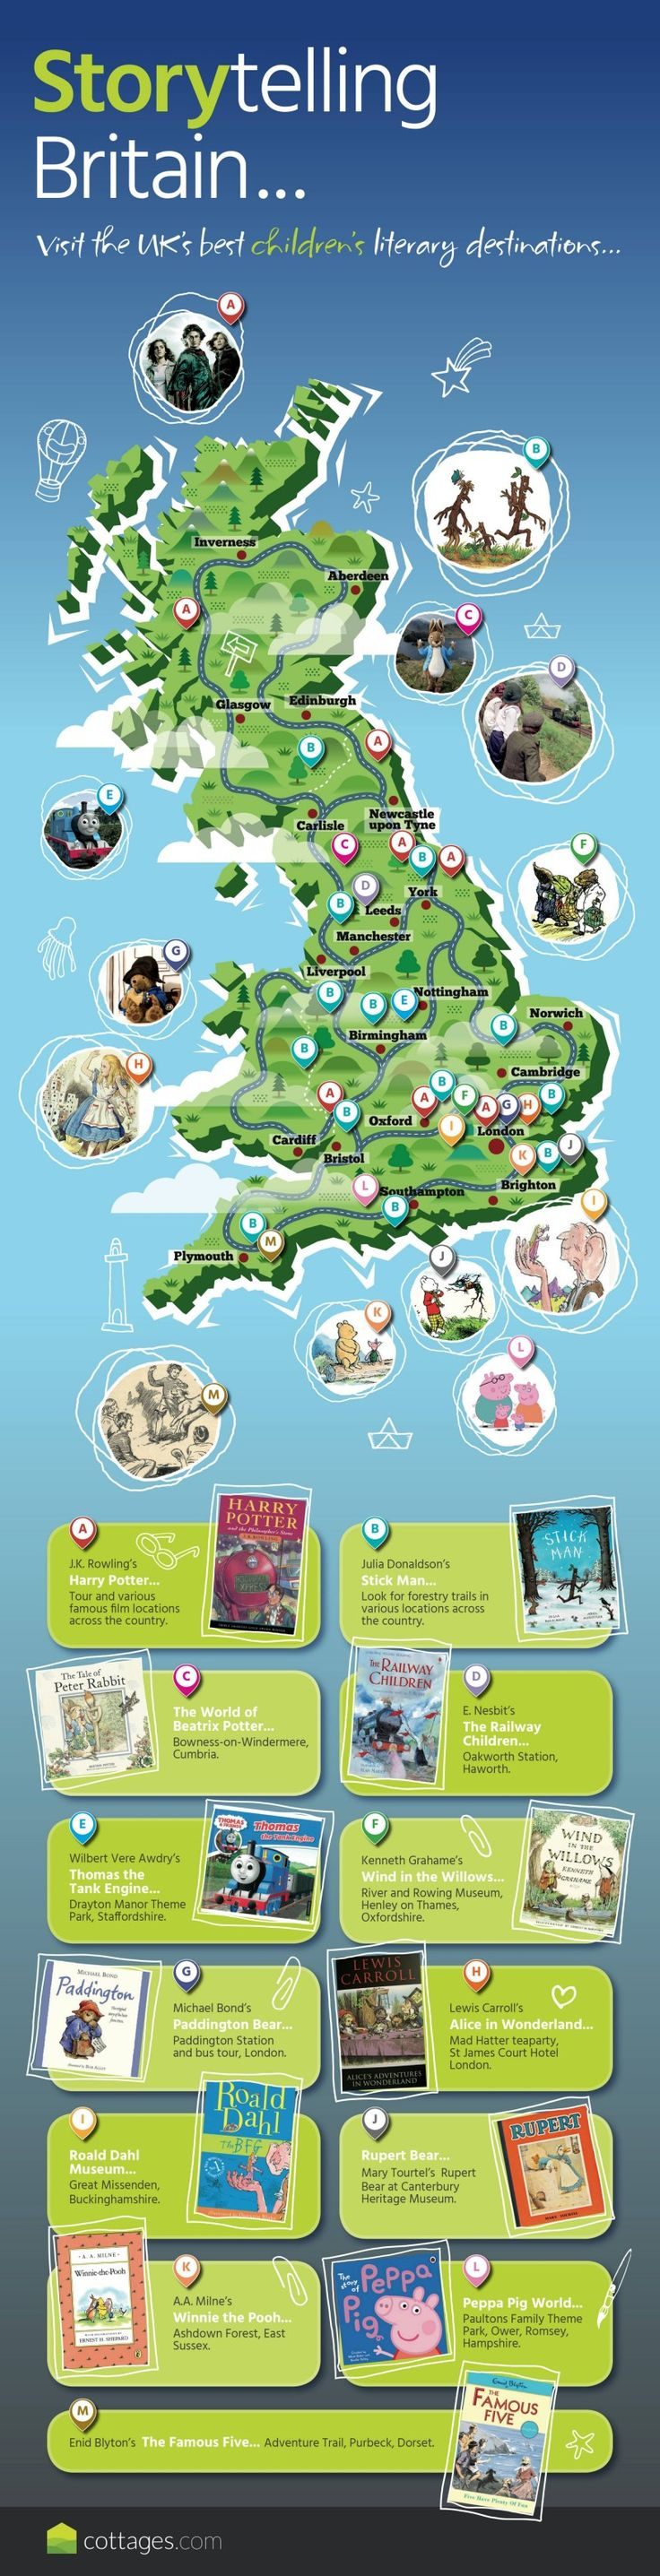 Discover The Beauty Of Story Telling Britain, with a guide to where in the UK to find wonderful fictional characters.